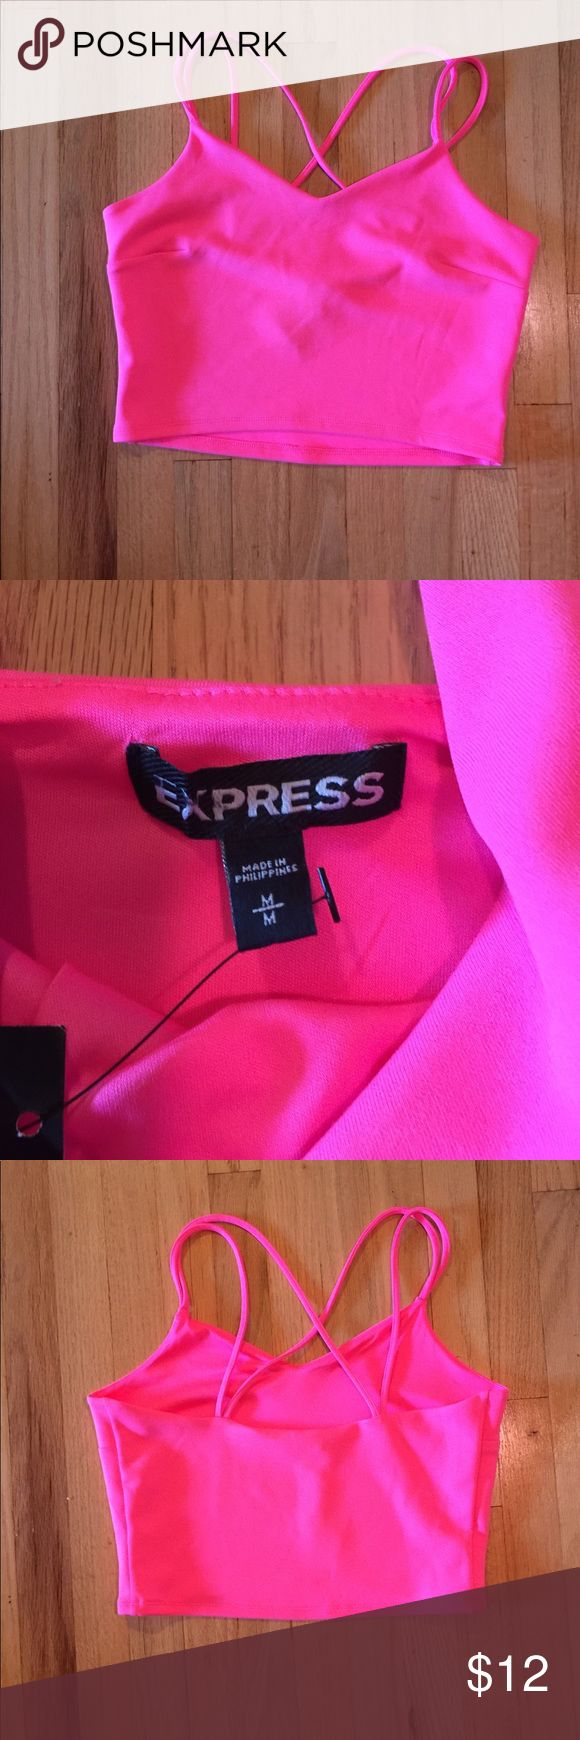 Express strappy pink crop top tank NWT A new with tags cute pink strappy cropped tank by Express. Size M. Spaghetti straps and v neckline. Poly/ spandex. Machine washable. Comfortable fabric. Tag slashed to prevent store return. Express Tops Tank Tops